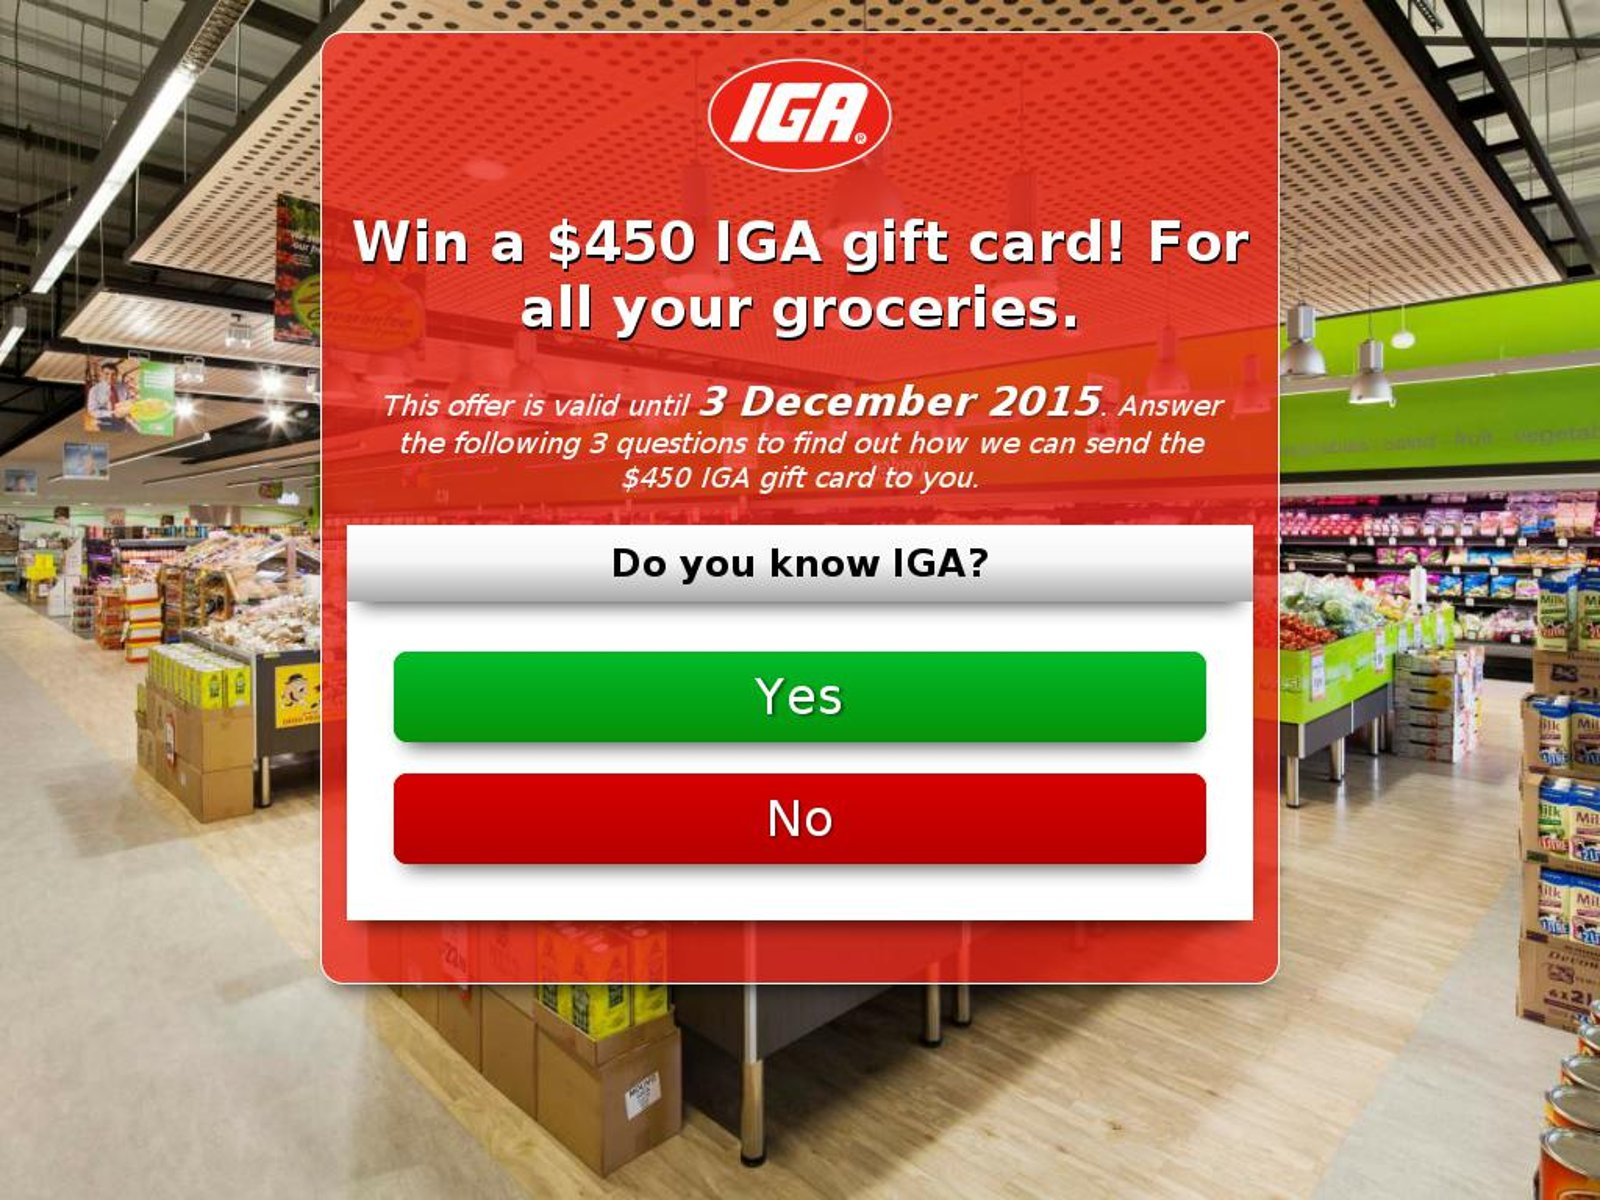 MailShark Win a 450 IGA gift card for all your groceries Visit Website